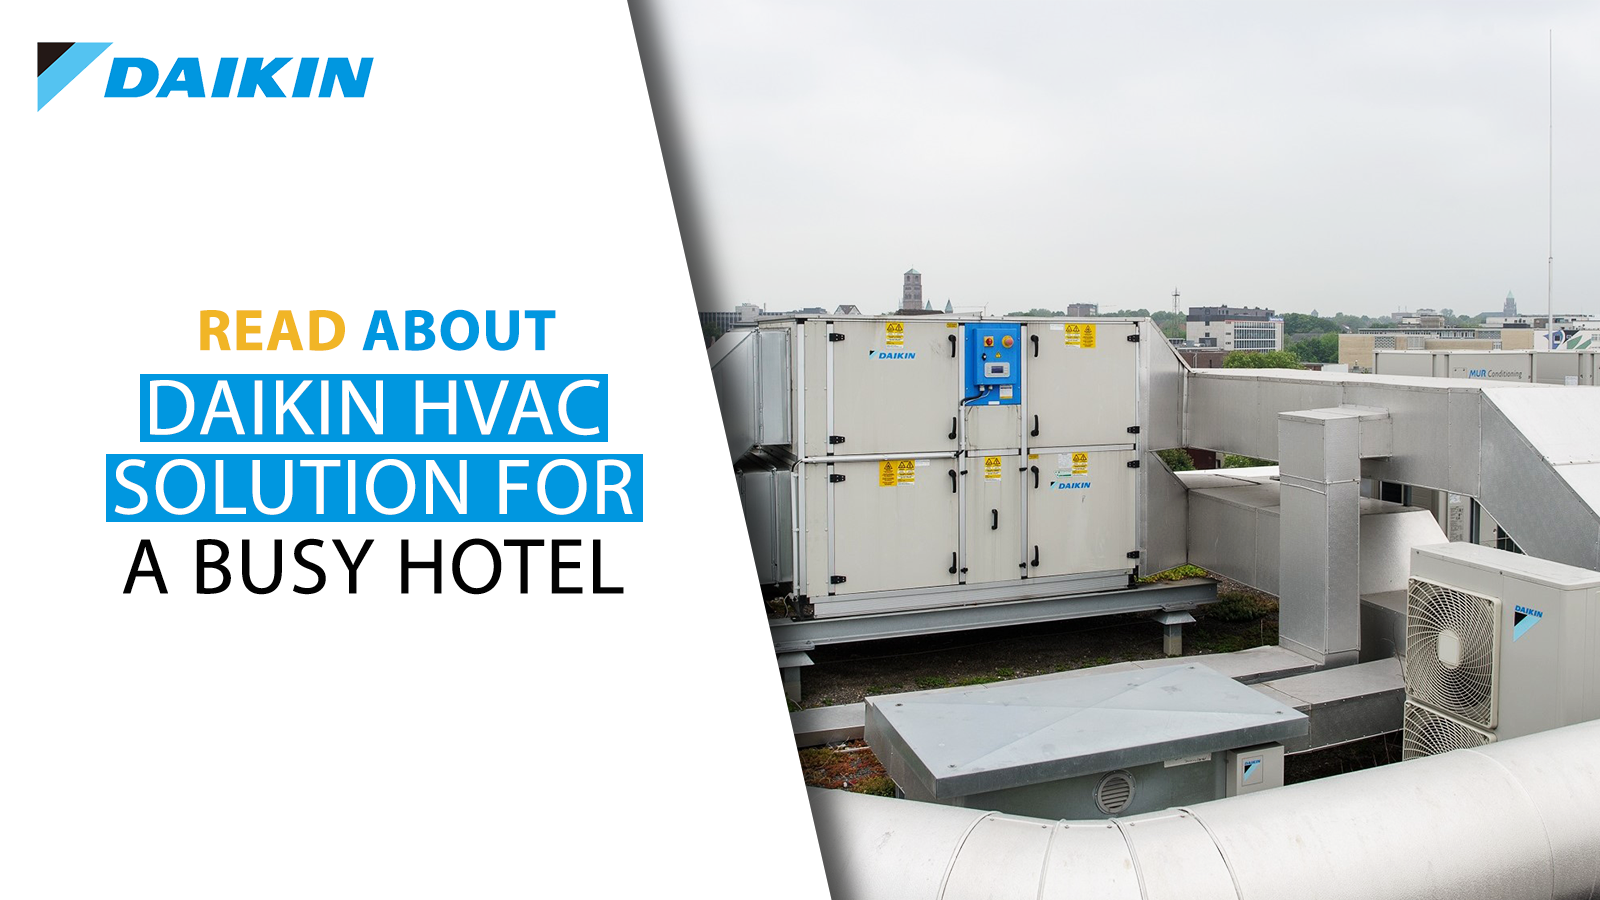 Daikin HVAC solution for a hotel